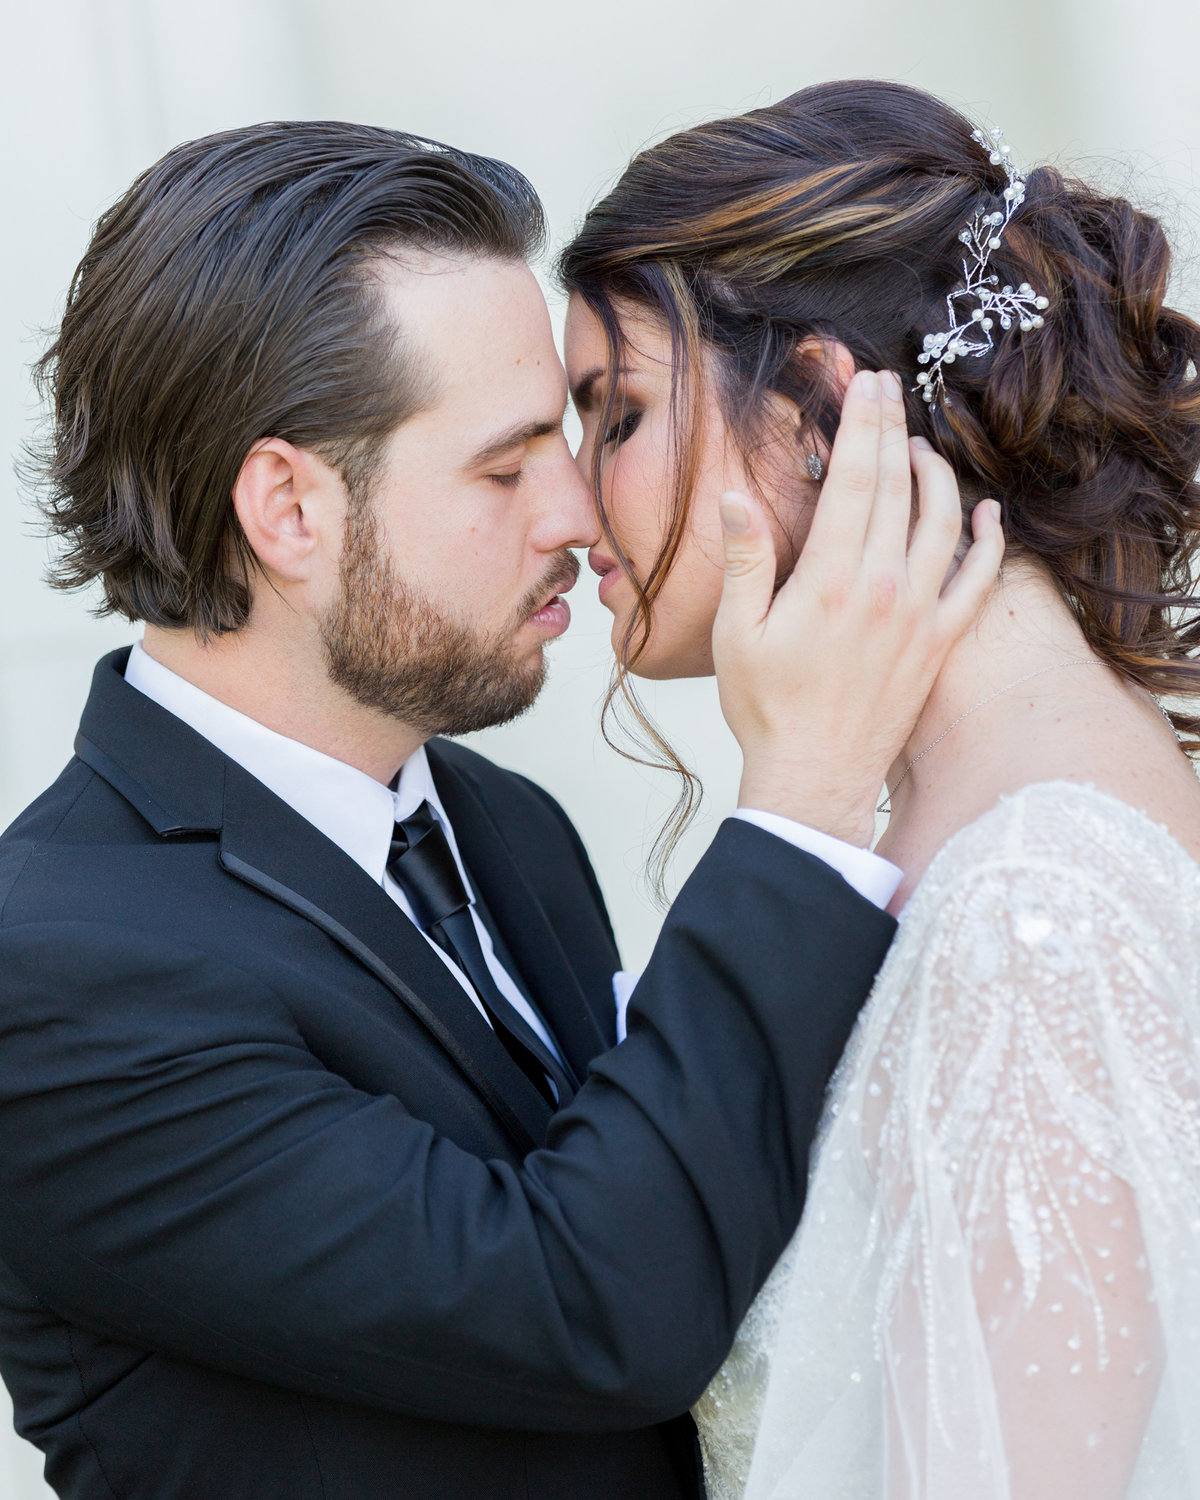 Estate Wedding Photographer, Bride and Groom - Rancho Mirage, CA